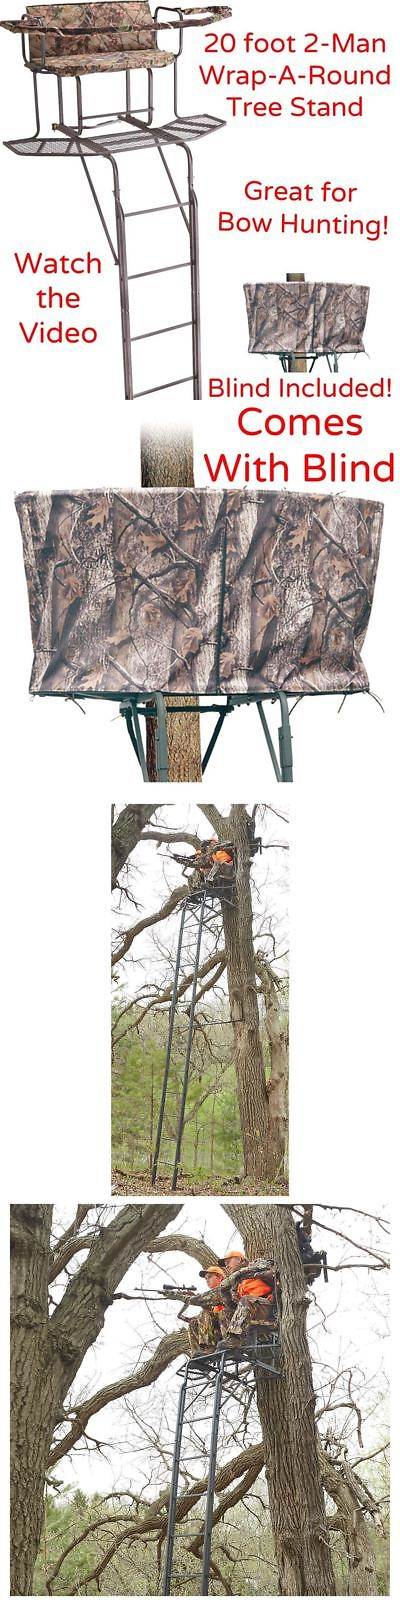 Tree Stands 52508 Xl 20 2 Man Wrap A Round Double Rail Ladder Tree Stand With Blind Deer Hunting Buy It Now Only With Images Tree Stand Deer Stand Deer Hunting Blinds